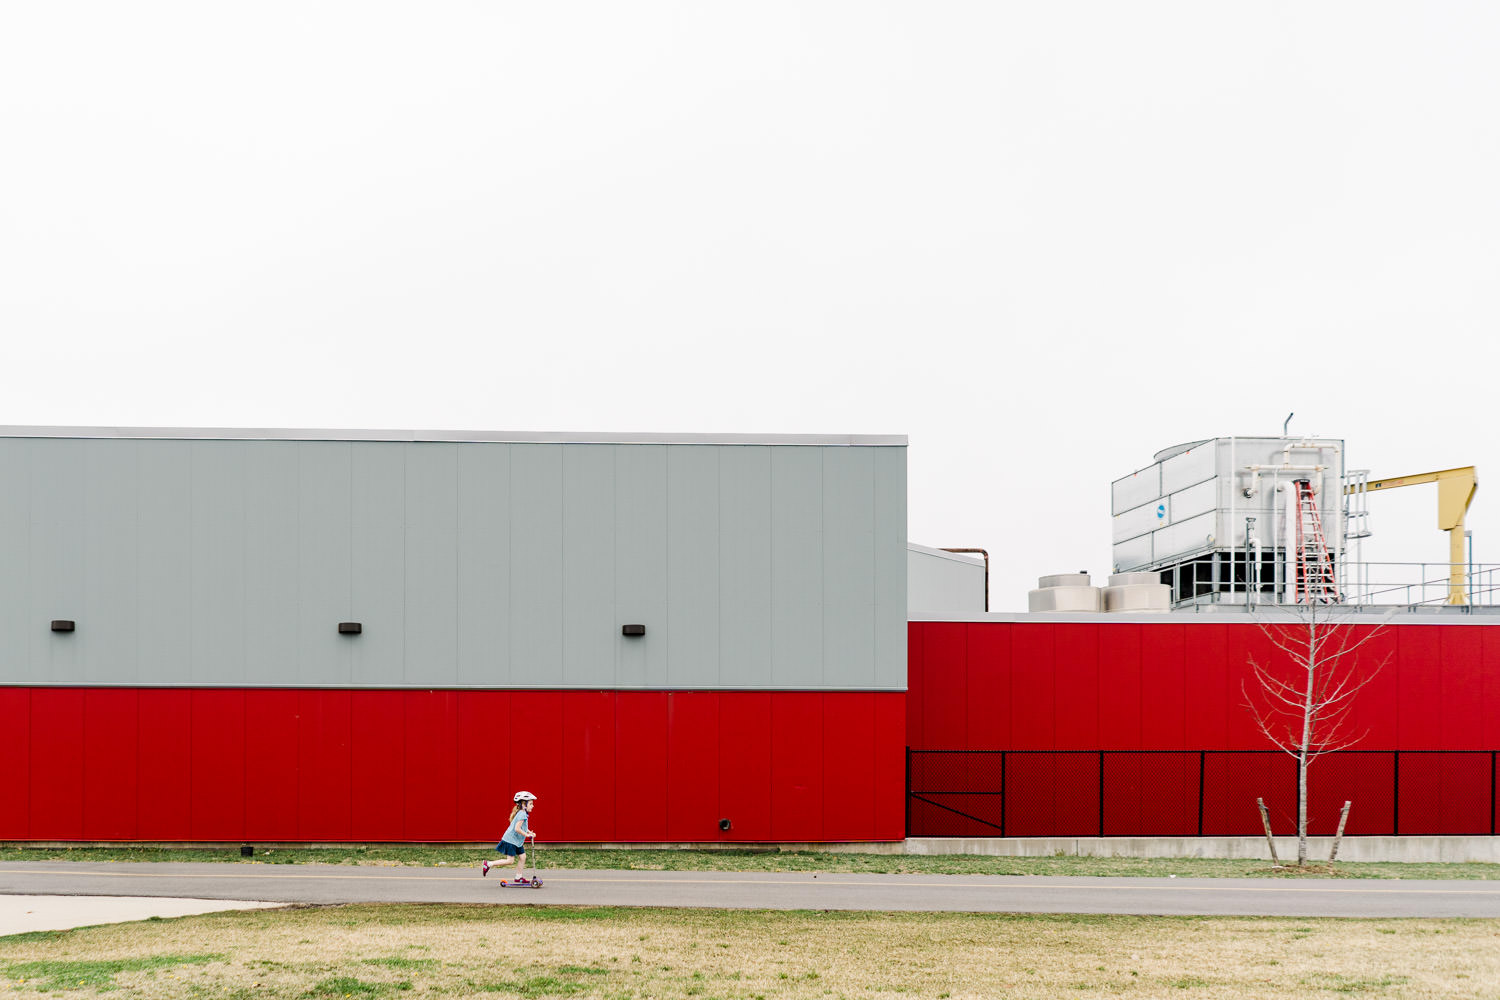 A child rides a scooter past a red building.